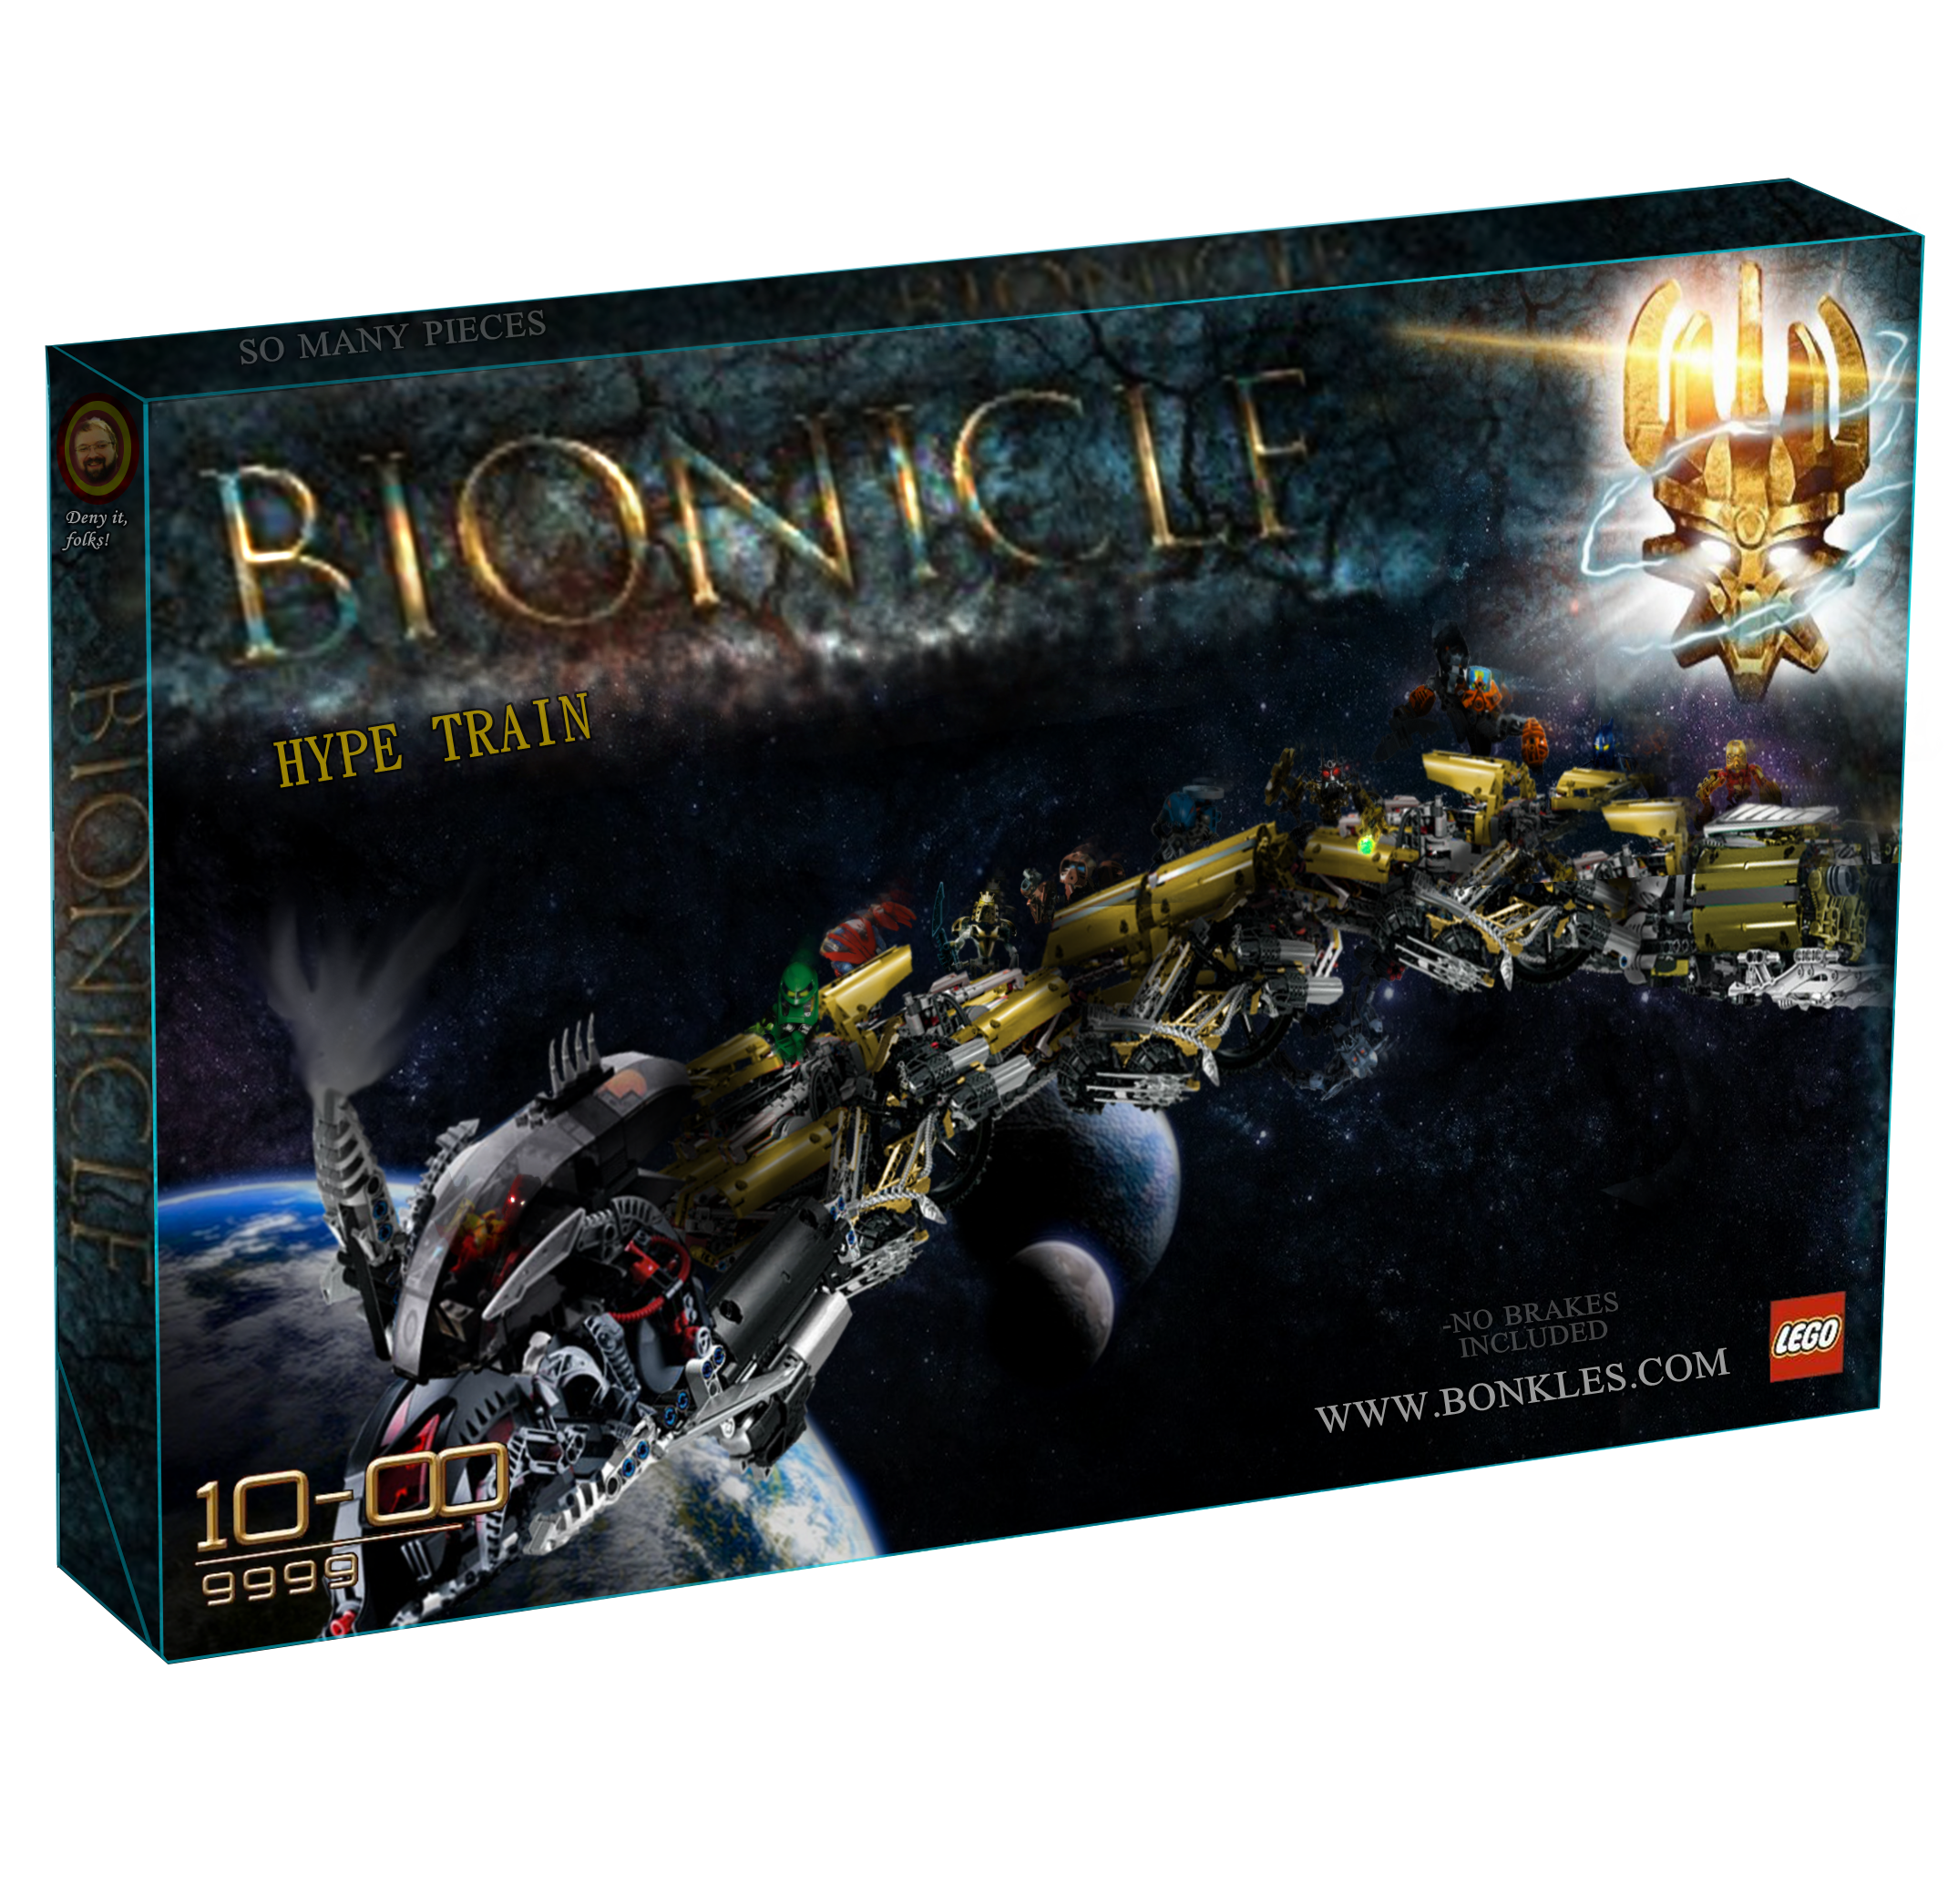 [Produits] BIONICLE 2015 : Retour sur la Comic Con de New York Bionicle_2015_hype_train_set_revealed__by_darthdestruktor-d8044rt